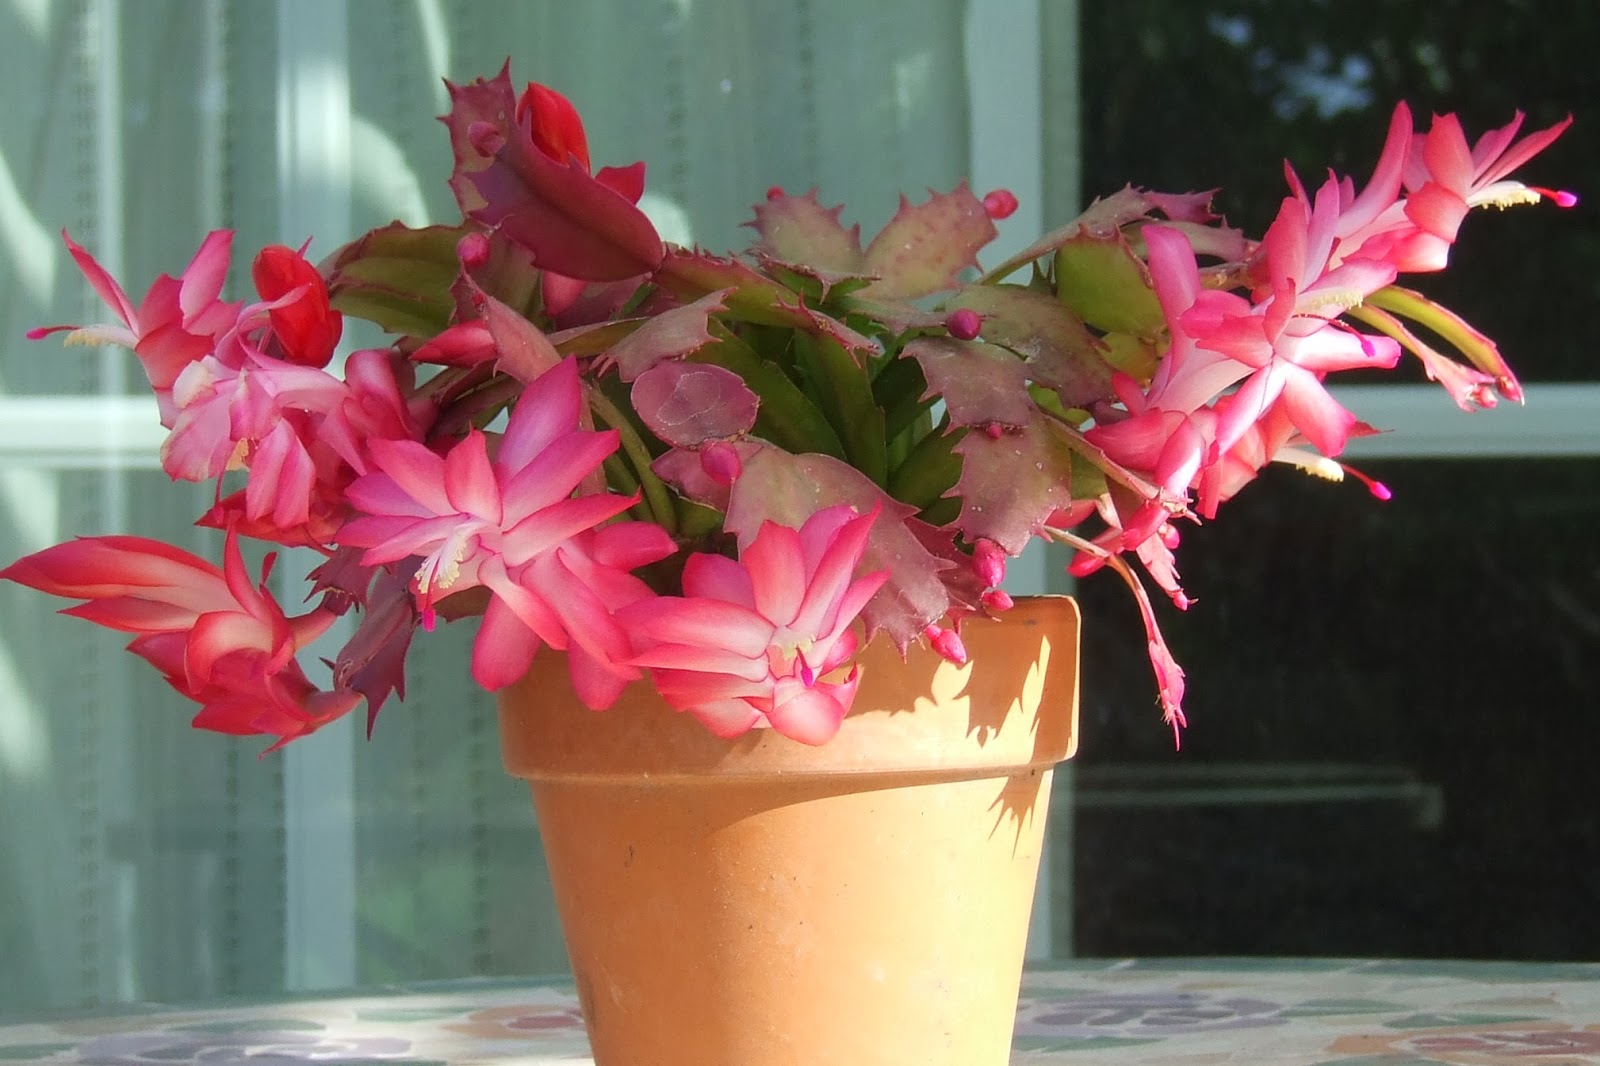 Flower Schlumbergera home care, reproduction and photo 33